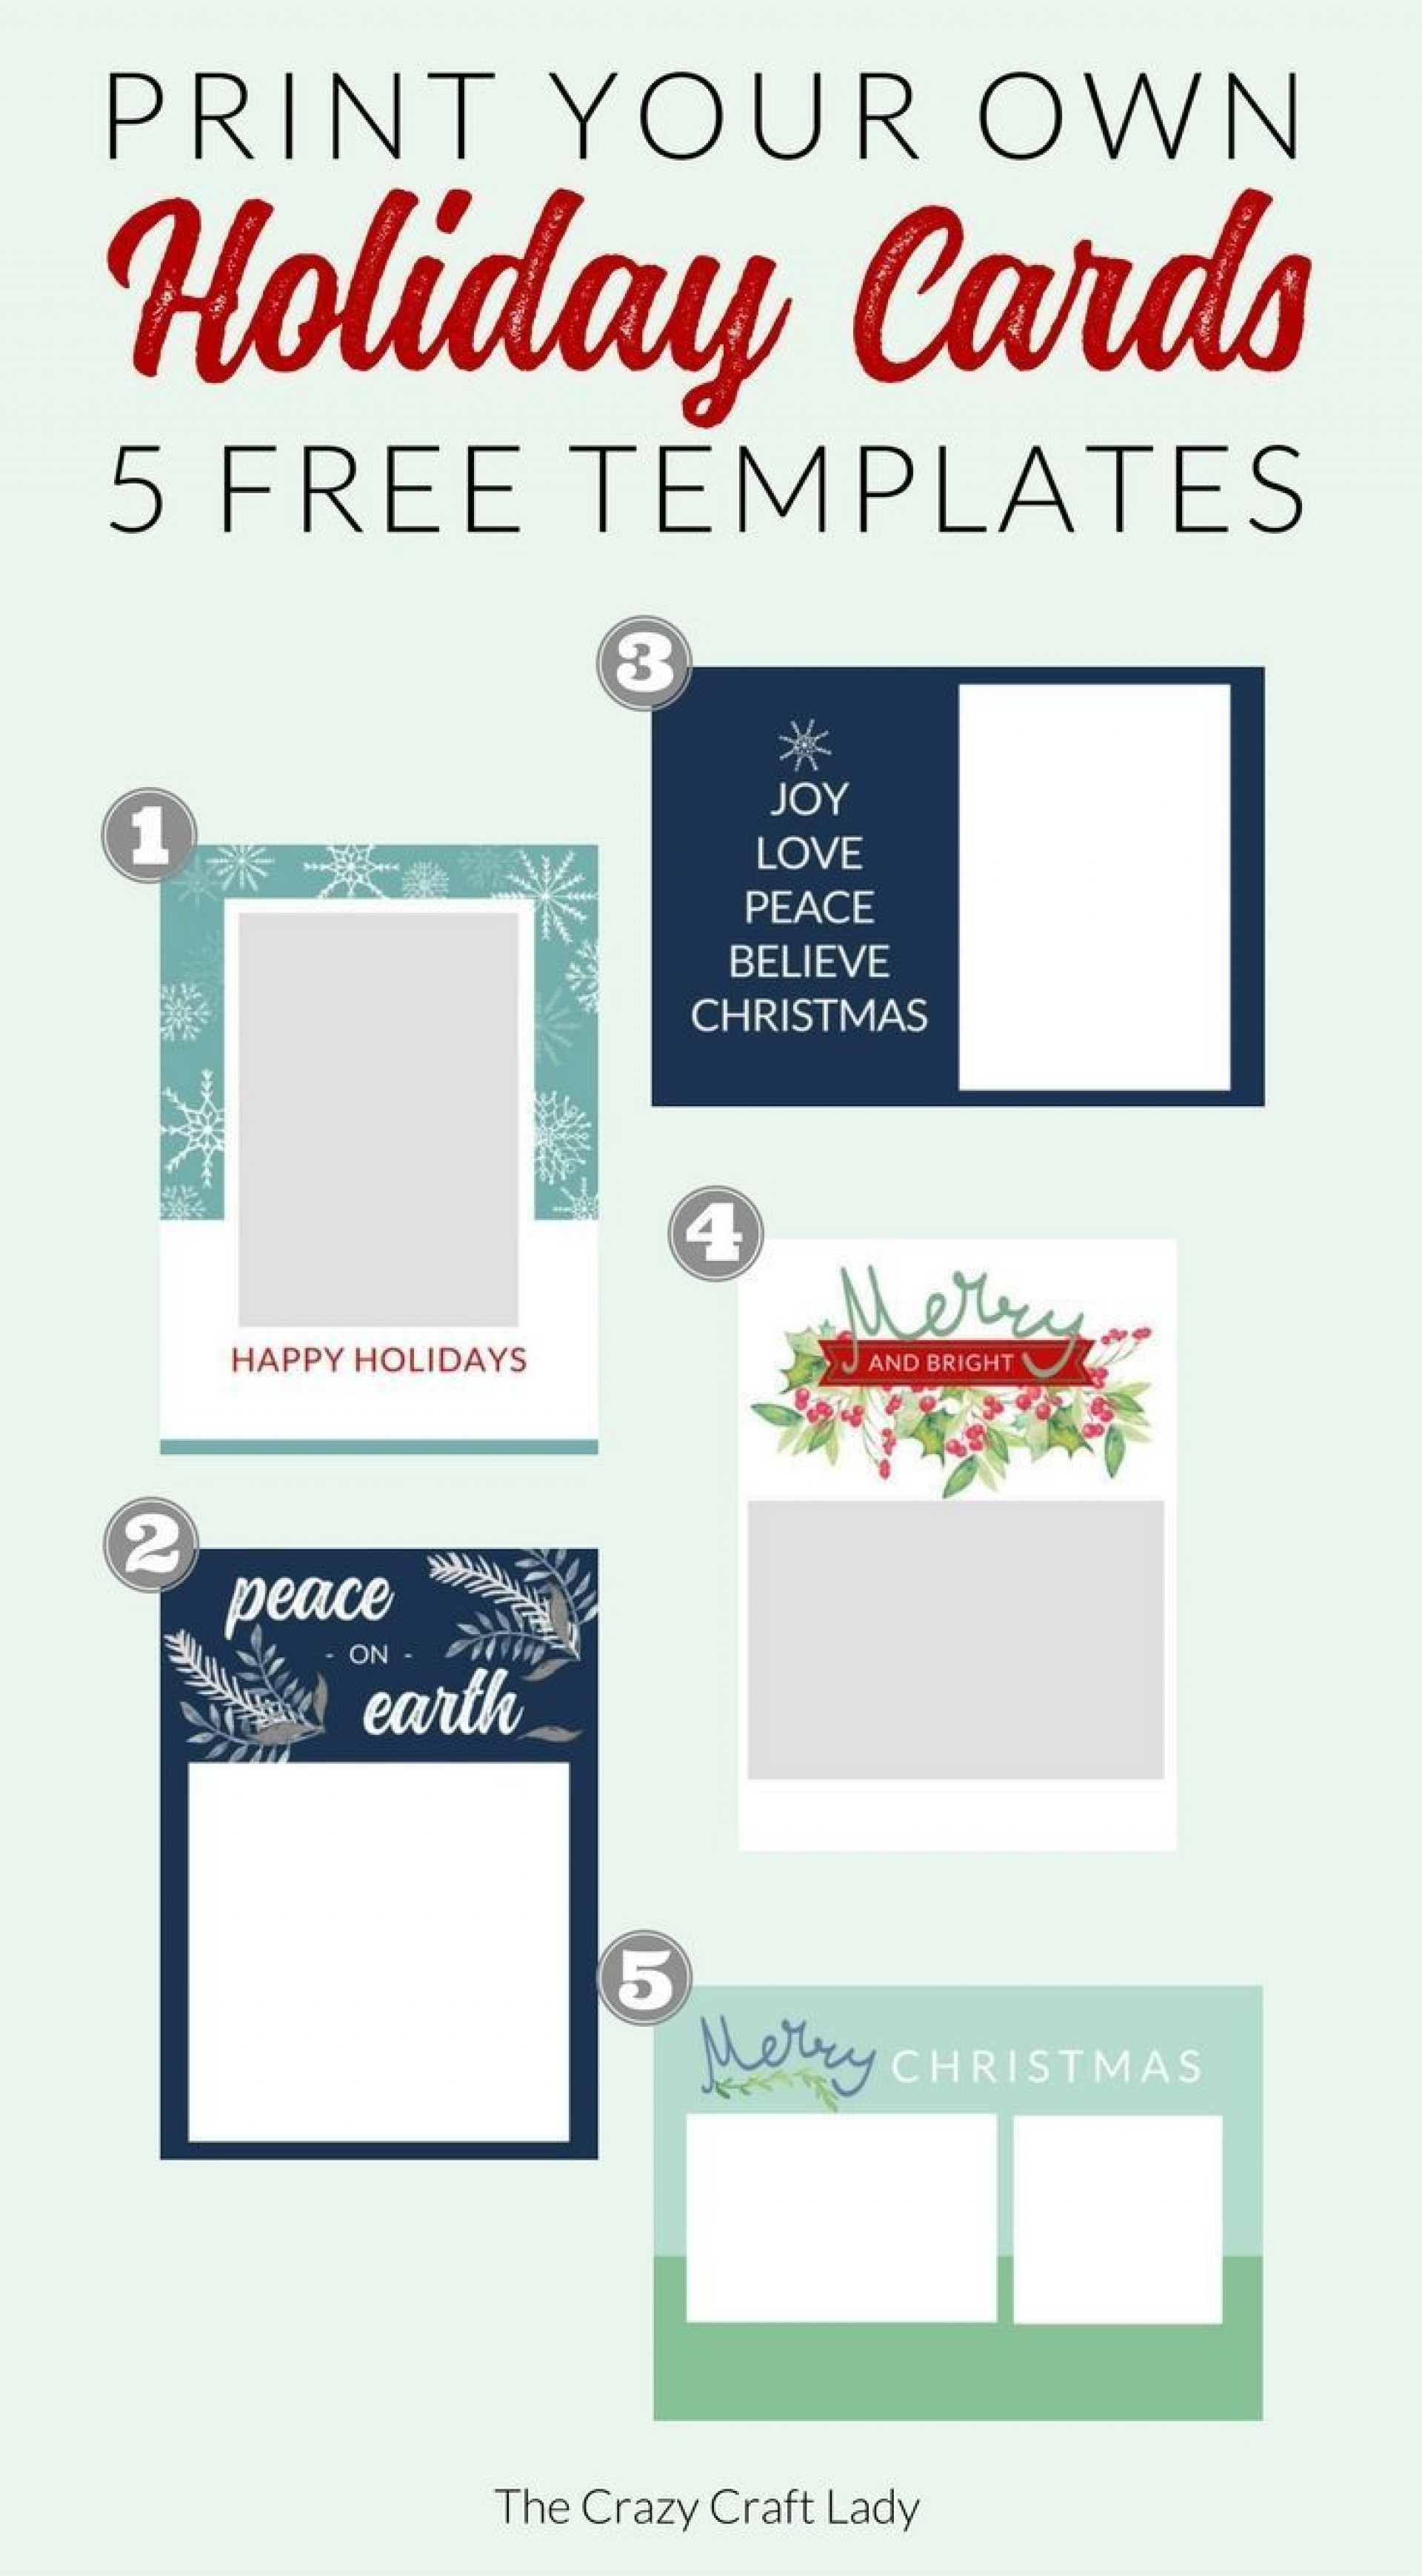 000 Stunning Free Holiday Card Template Photo  Templates Printable For Word1920